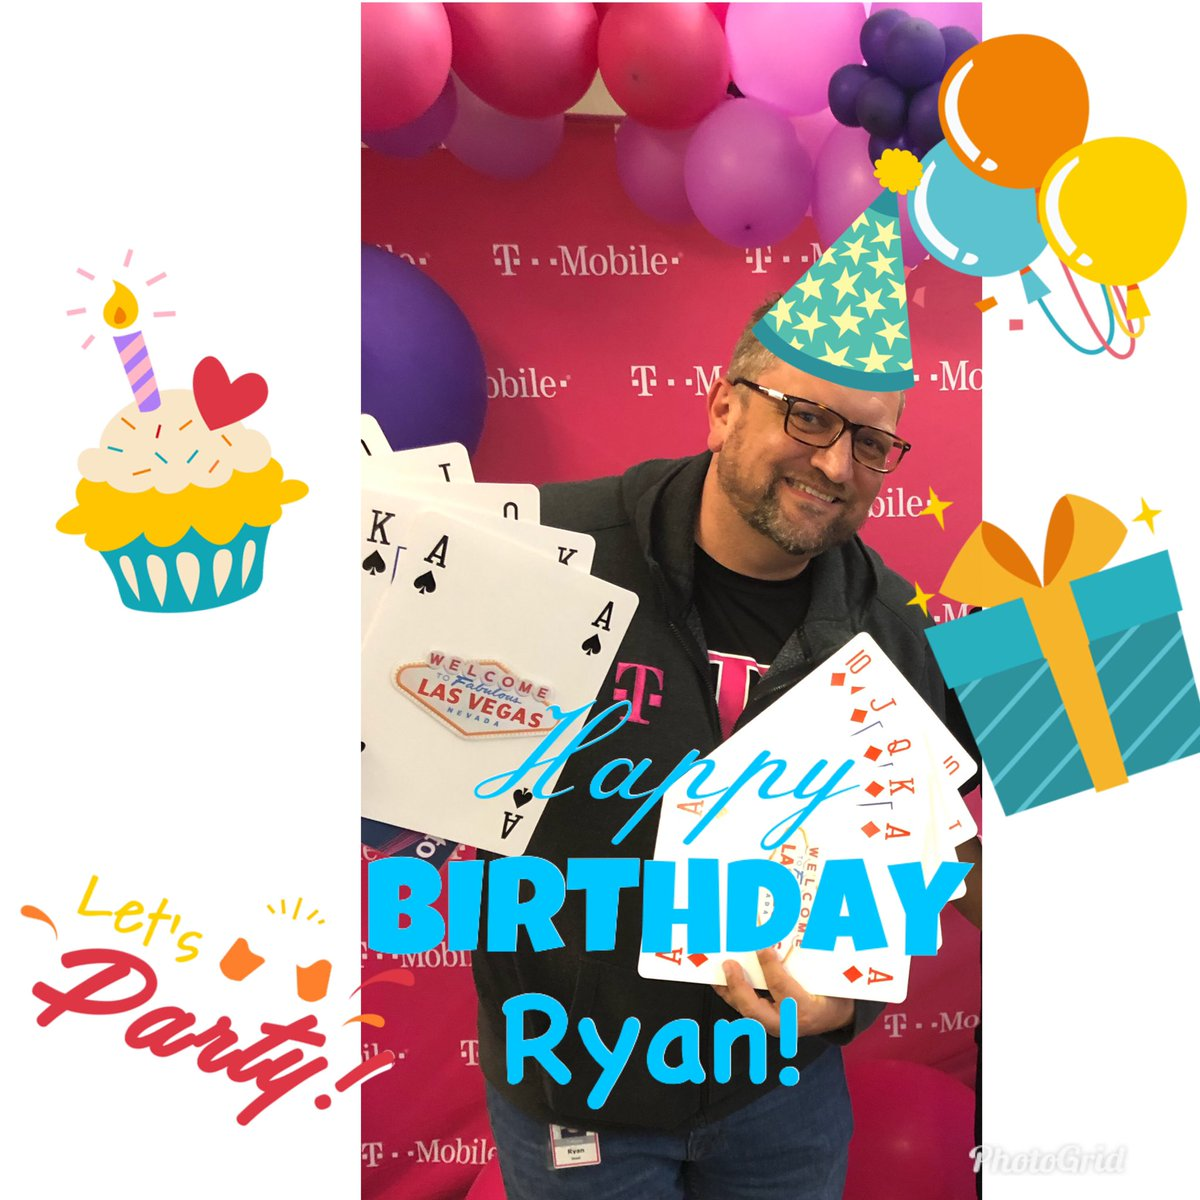 Happy birthday @RyanShiell! Thank you for everything you do for our team! We hope you have an amazing day! #HappyBirthday #RisingTide @bnash001 @JonFreier @MRM8907 @edwinrod112